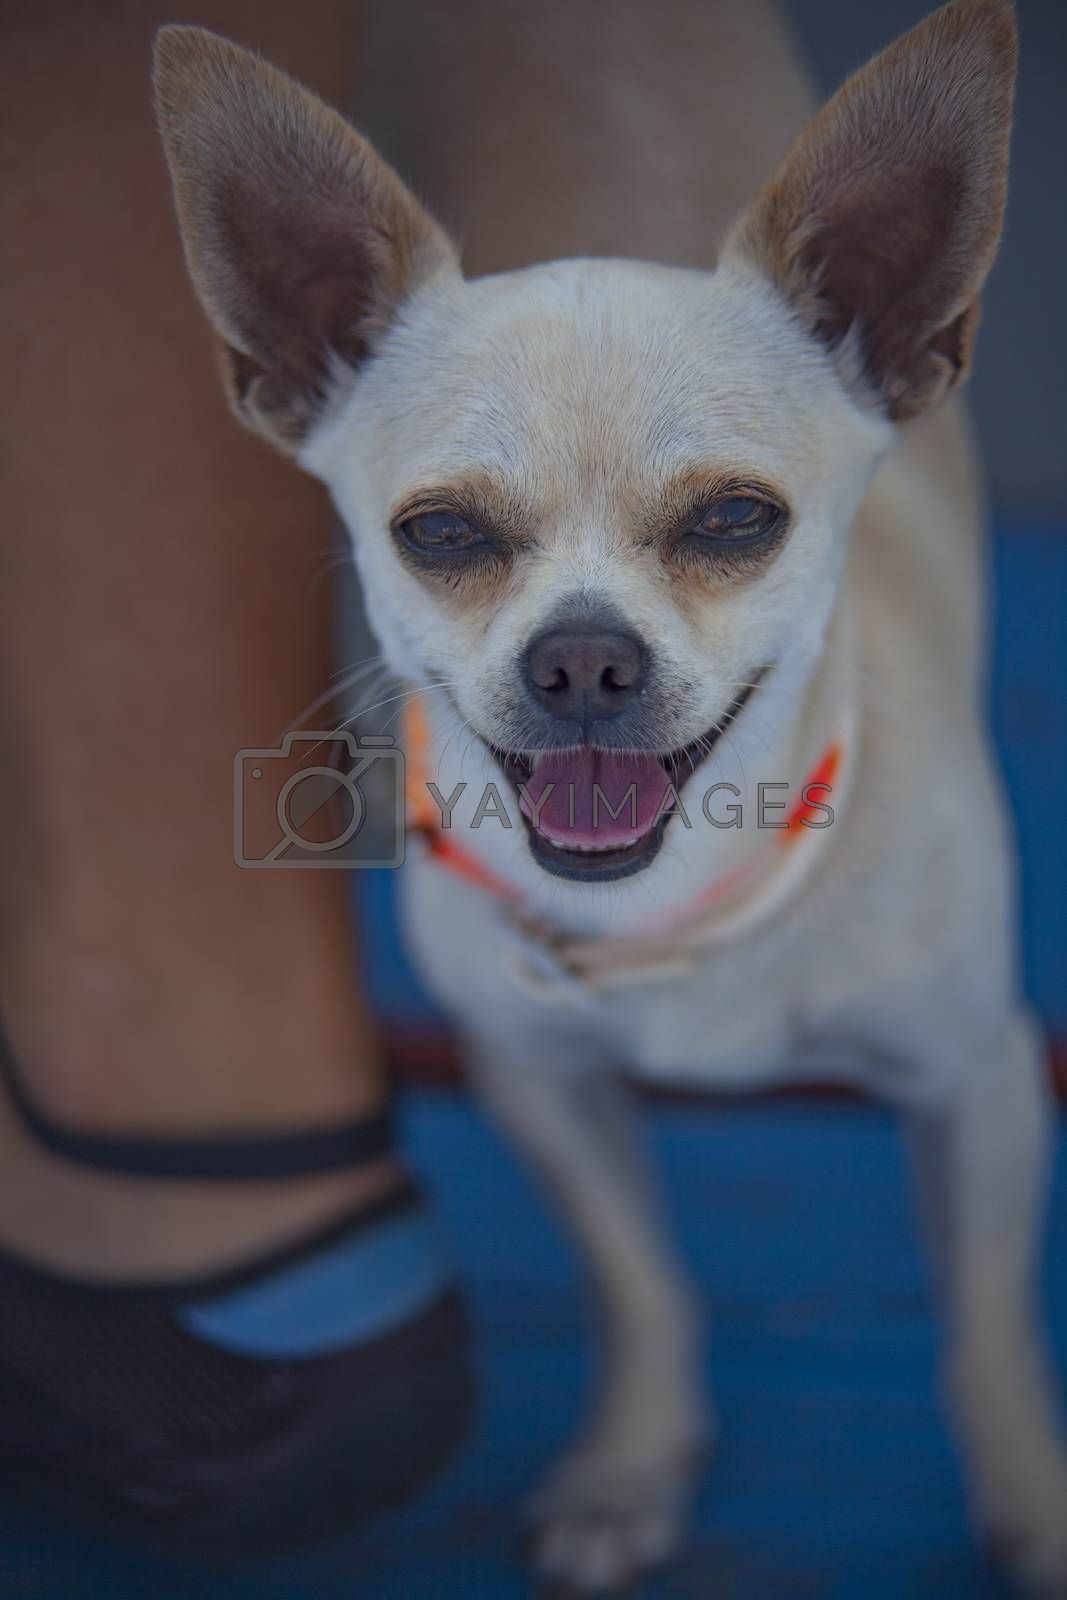 Royalty free image of Chihuahua in the boat #3 by pippocarlot